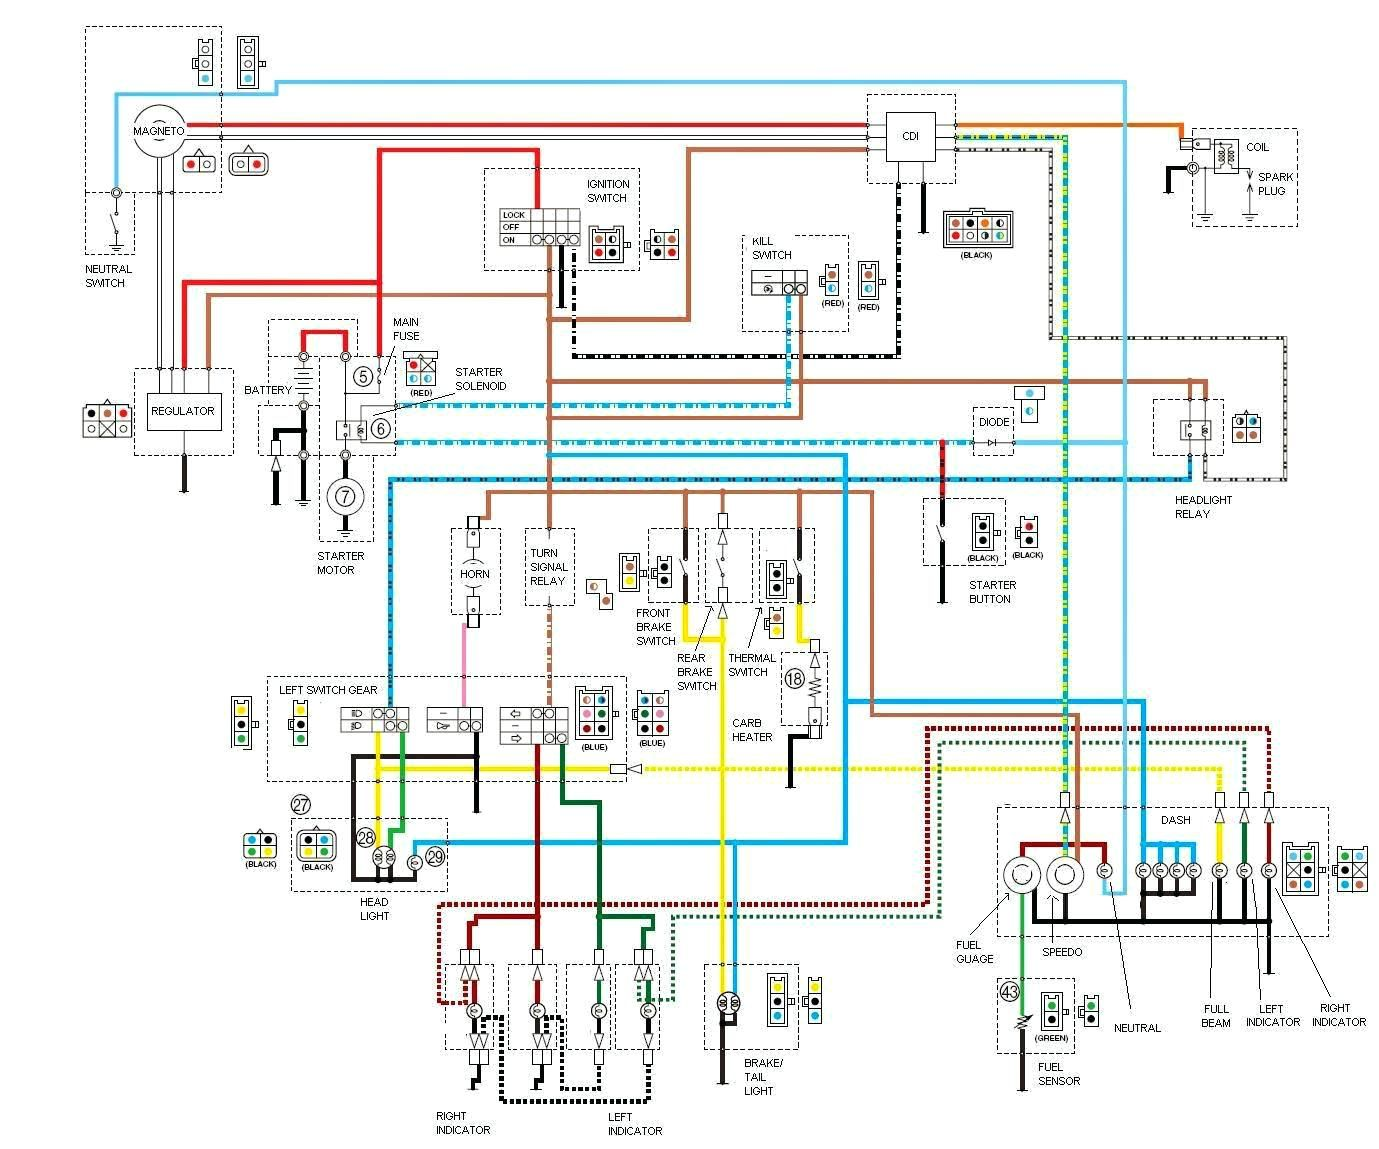 Guitar Live Sound Setup Diagram Fantastic Band Pa System Wiring